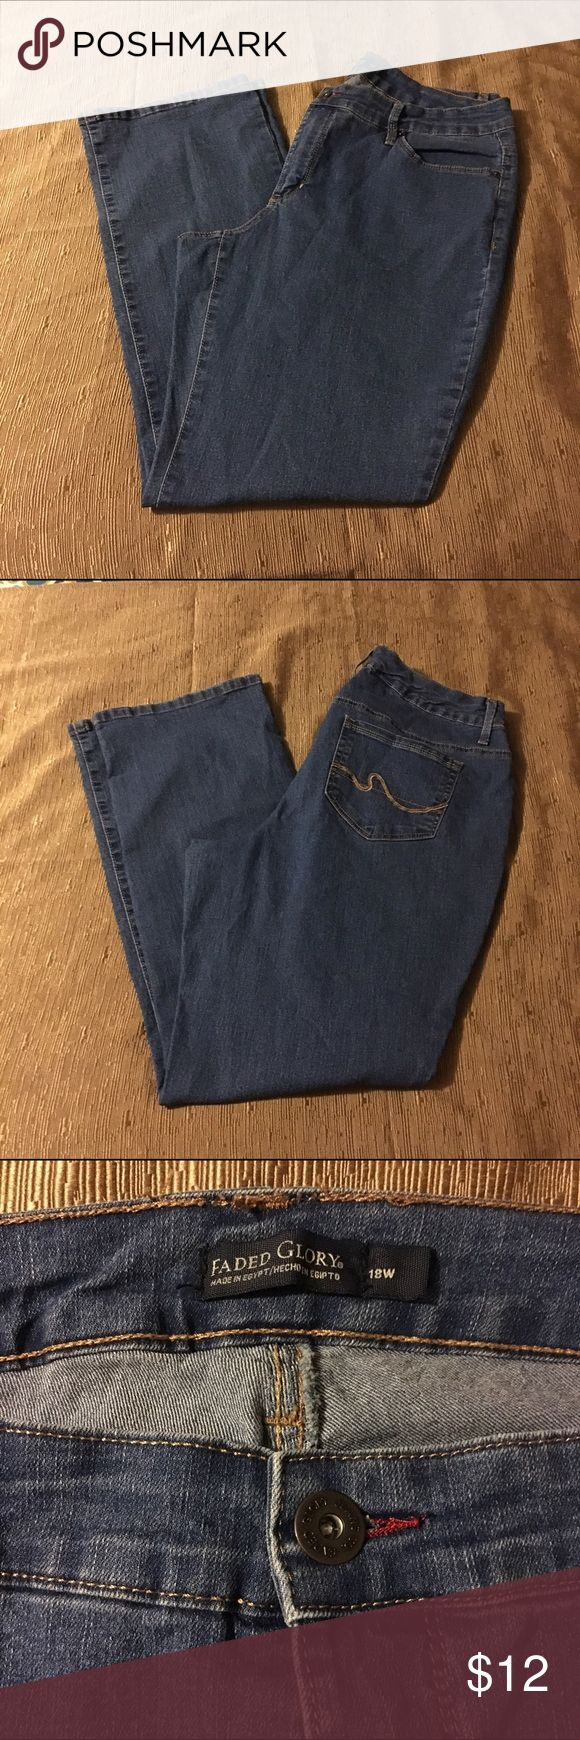 NWOT PLUS SIZE Faded Glory jeans Brand new without tags Faded Glory Jeans. Bootcut medium rinse. Faded Glory Jeans Boot Cut